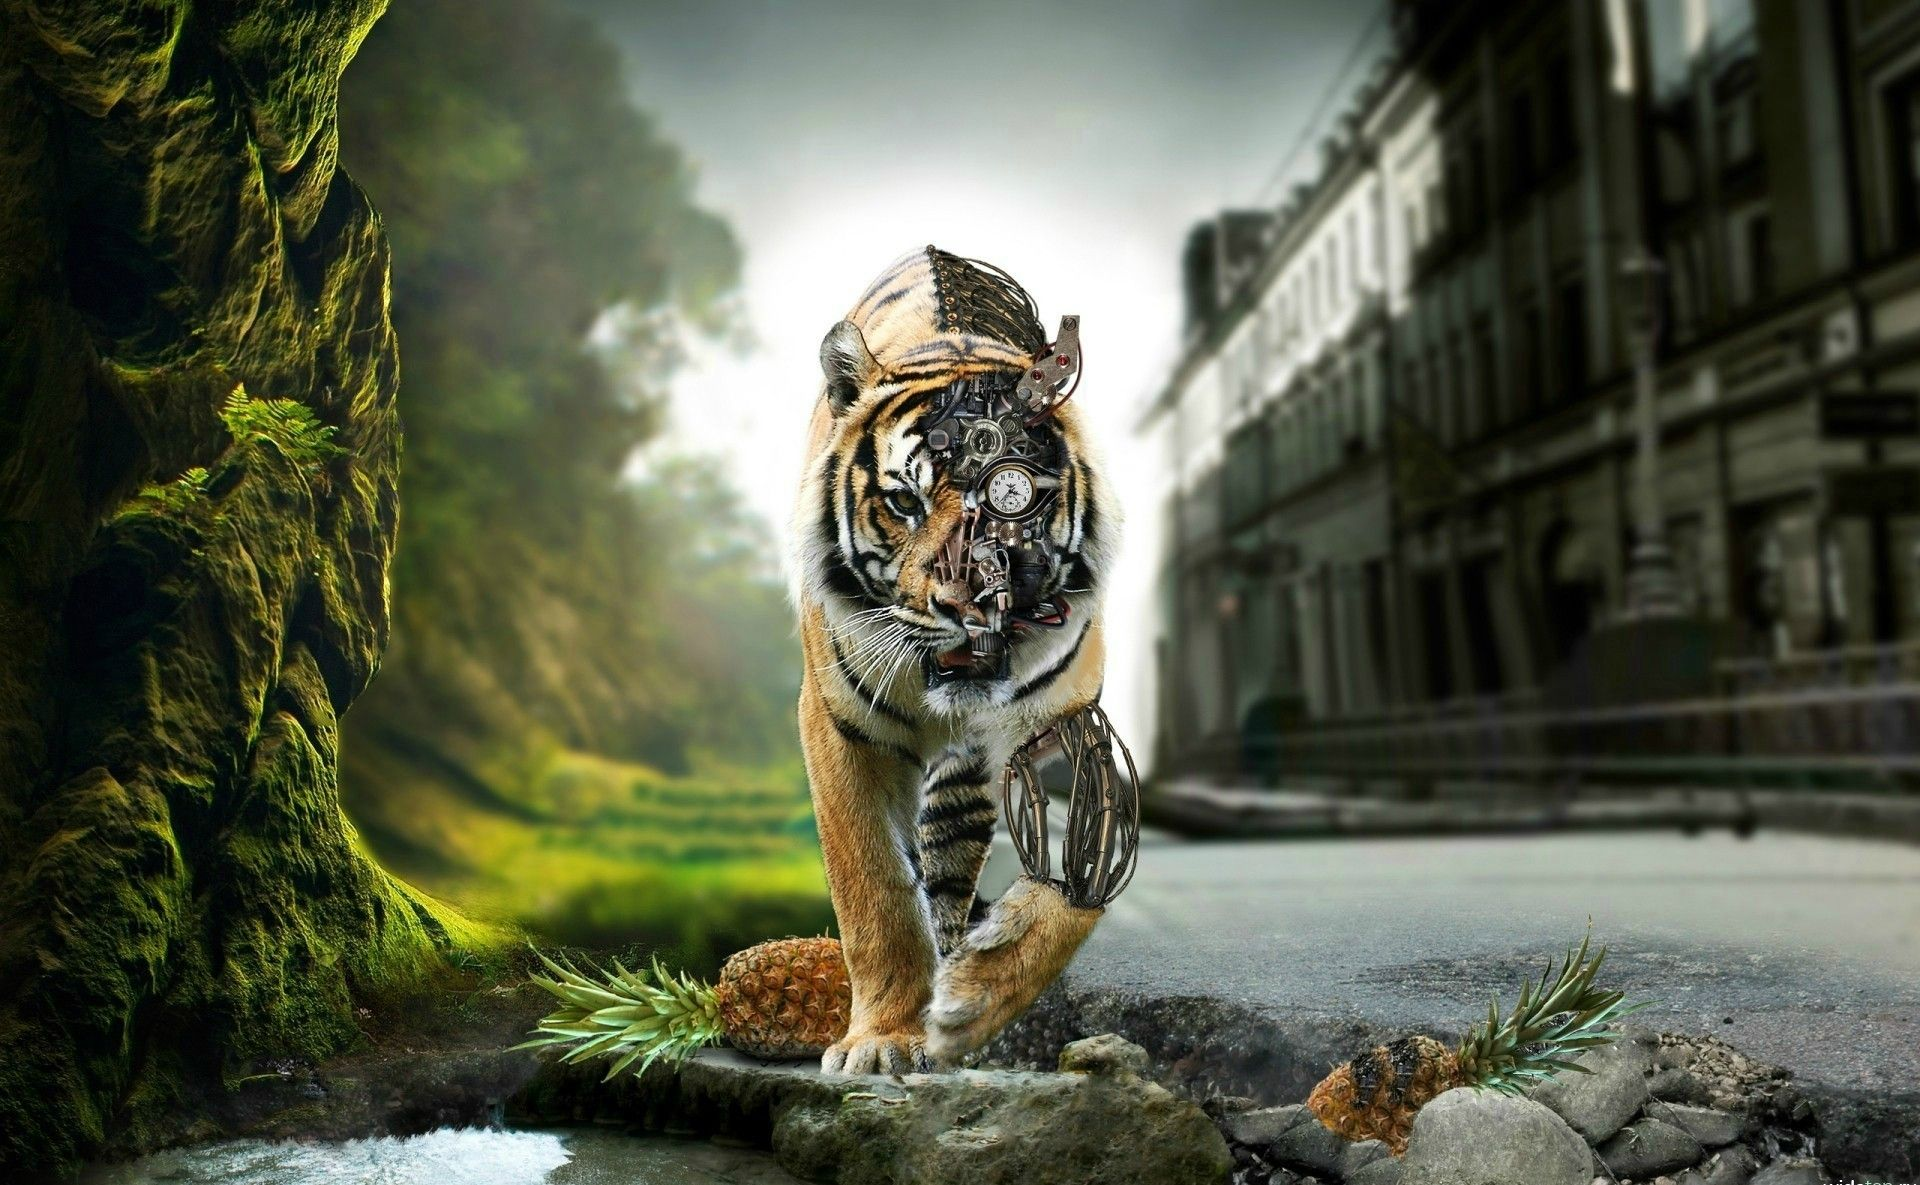 Steampunk Backgrounds In 2019 Tiger Wallpaper Robot